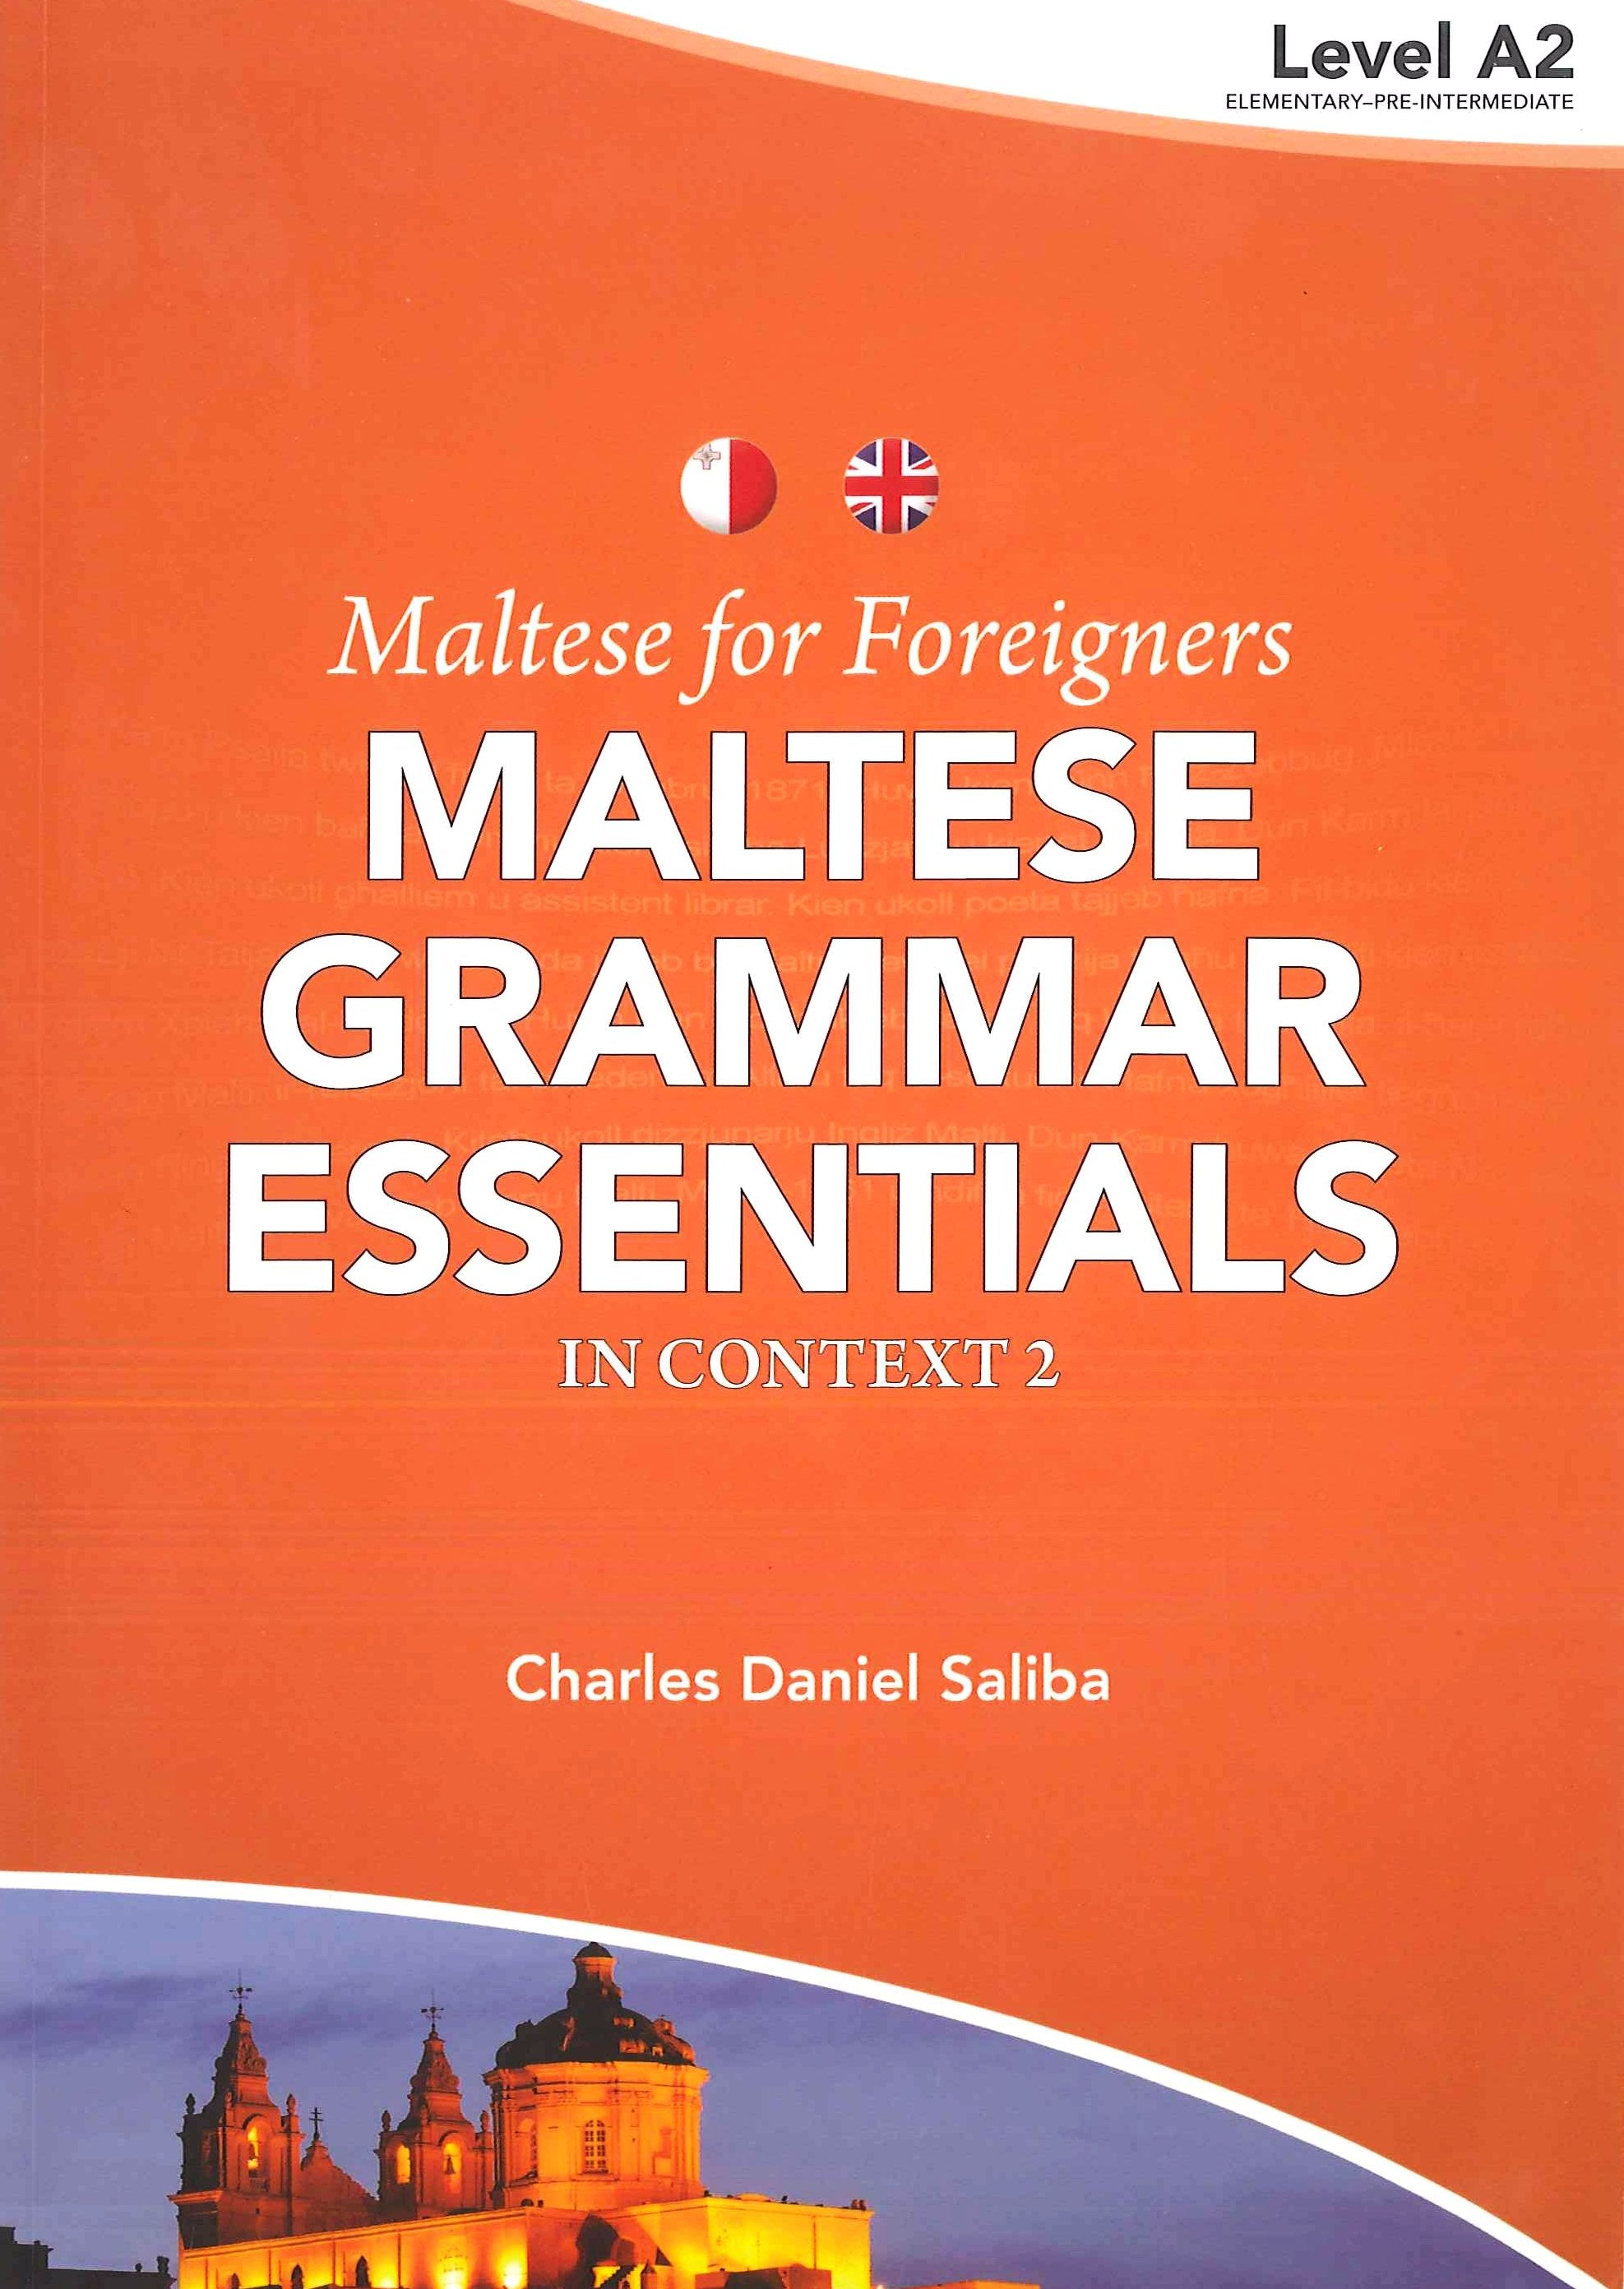 Maltese for Foreigners : Maltese Grammar Essentials in Context 2